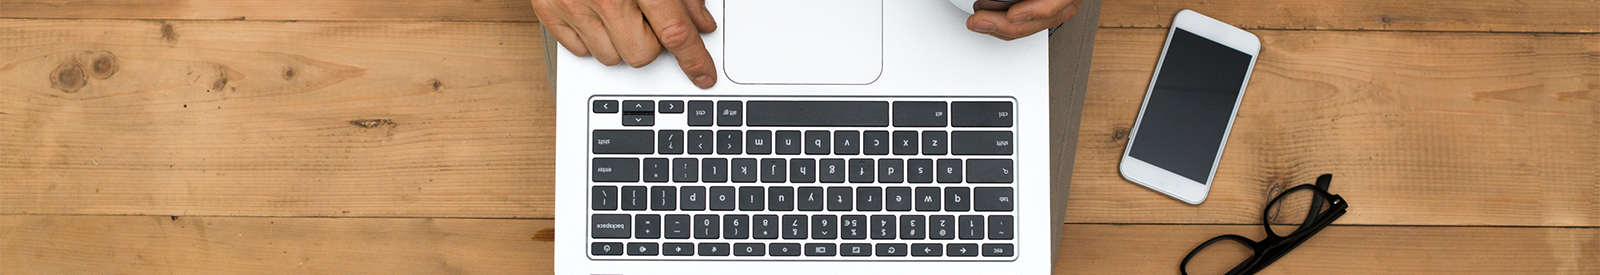 Computer keyboard with man's hand.